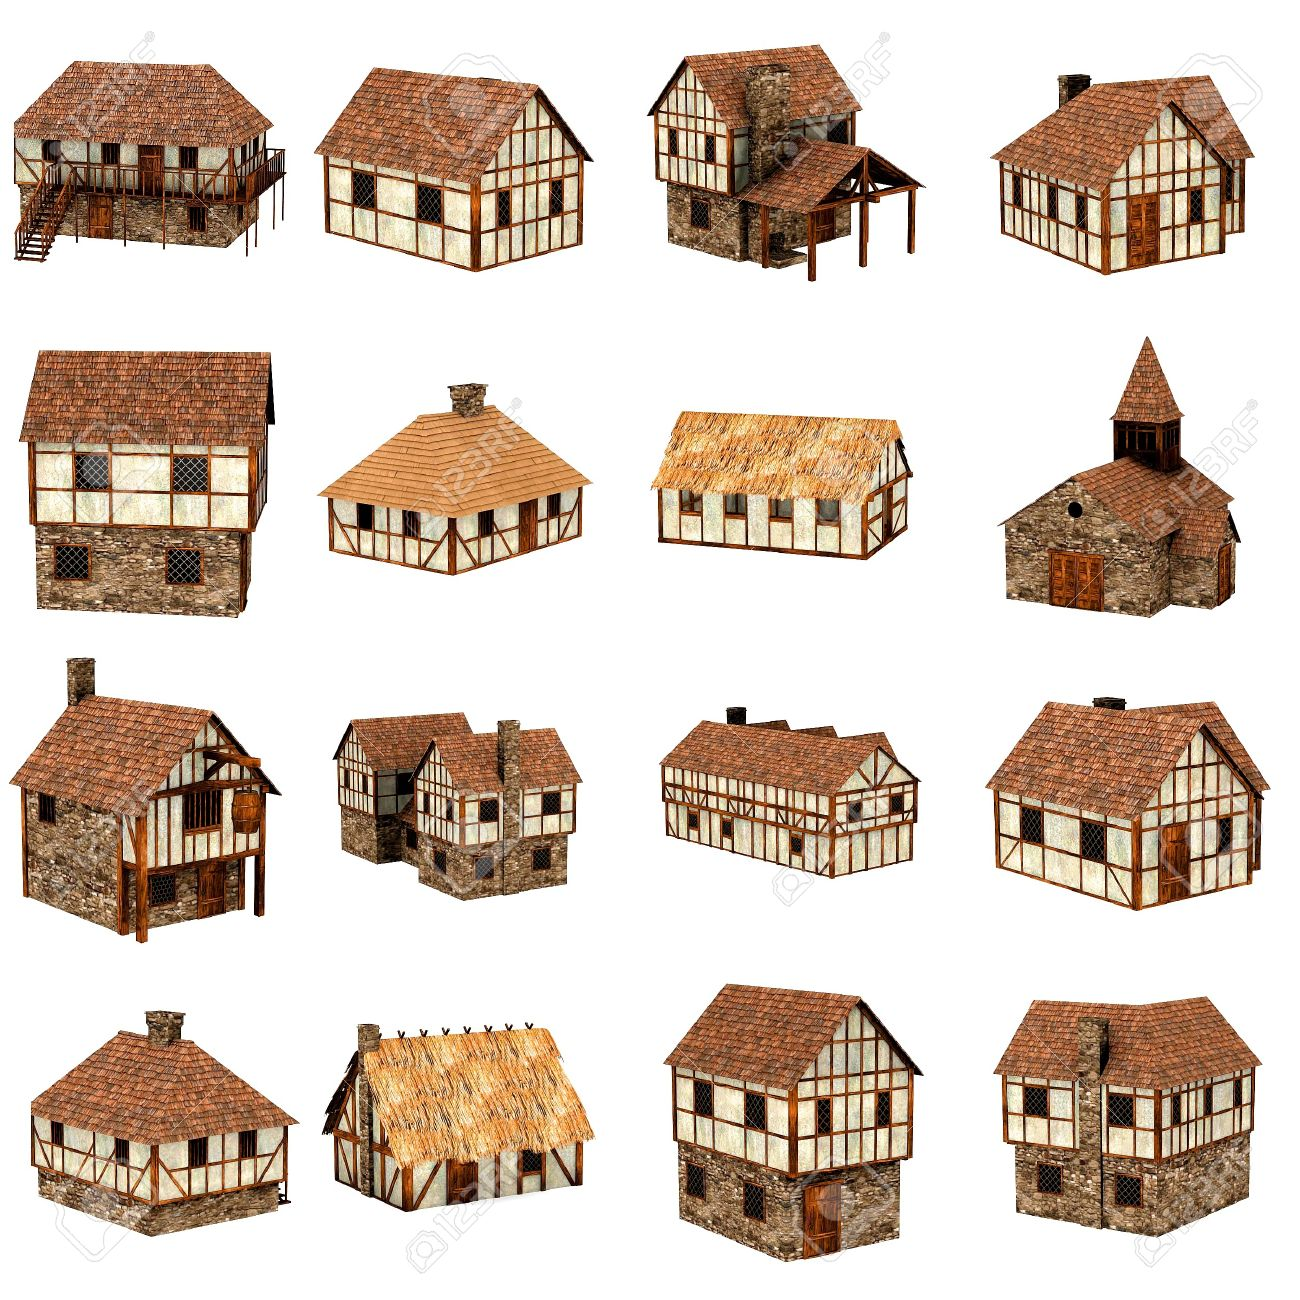 Warhammer clipart medieval Clipart Collection Medieval Clipground Houses